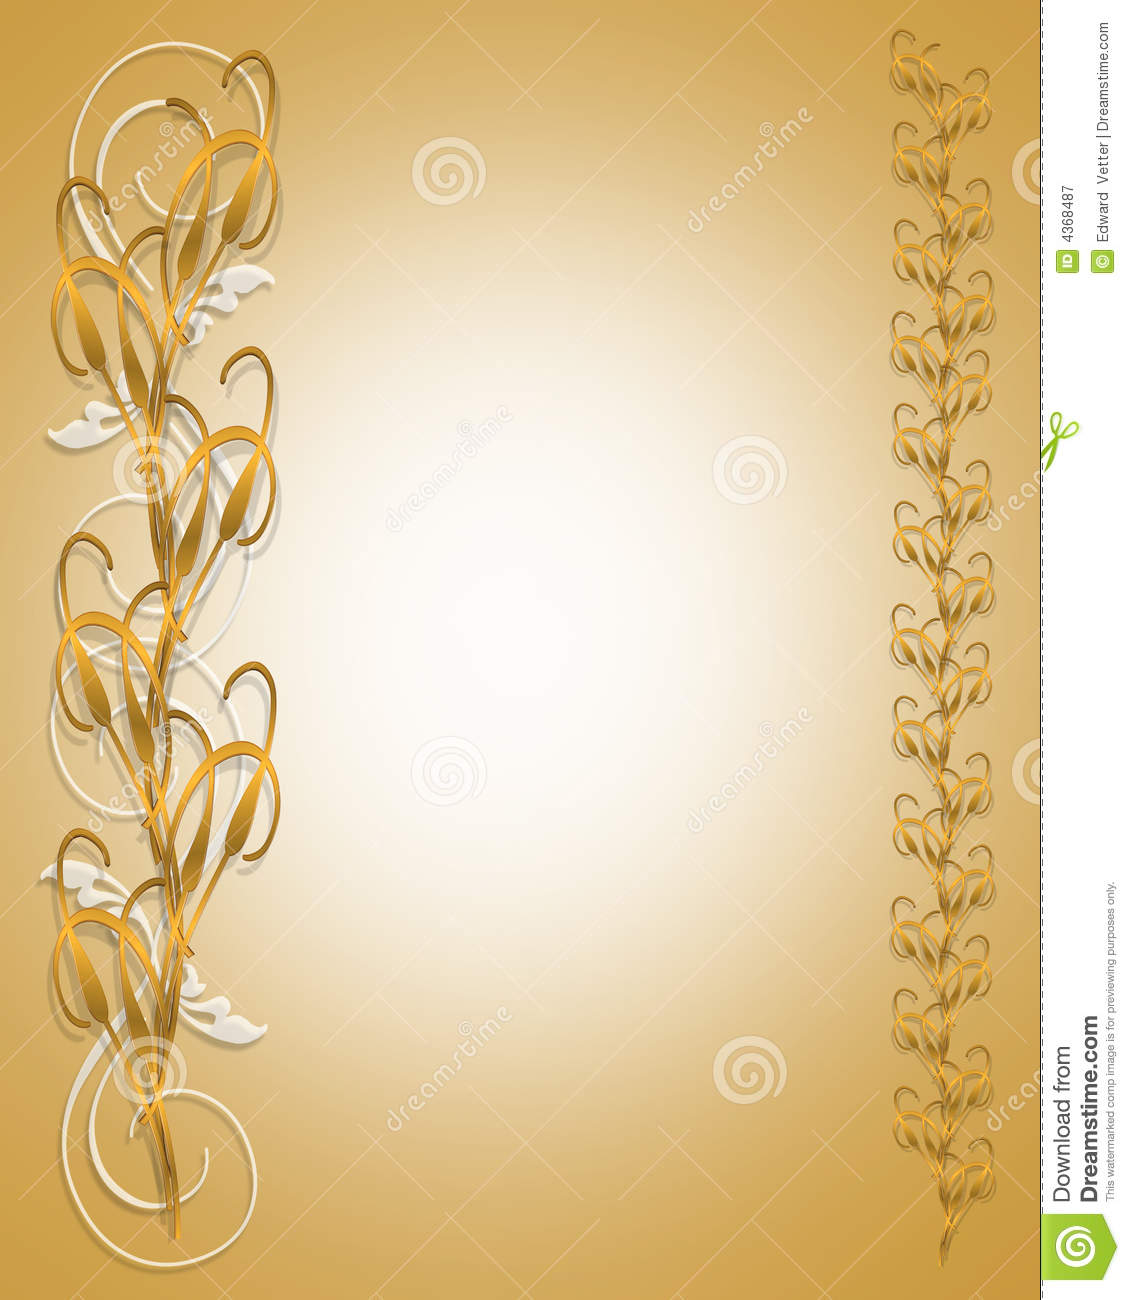 Golden Cat Tails Floral Border Stock Illustration